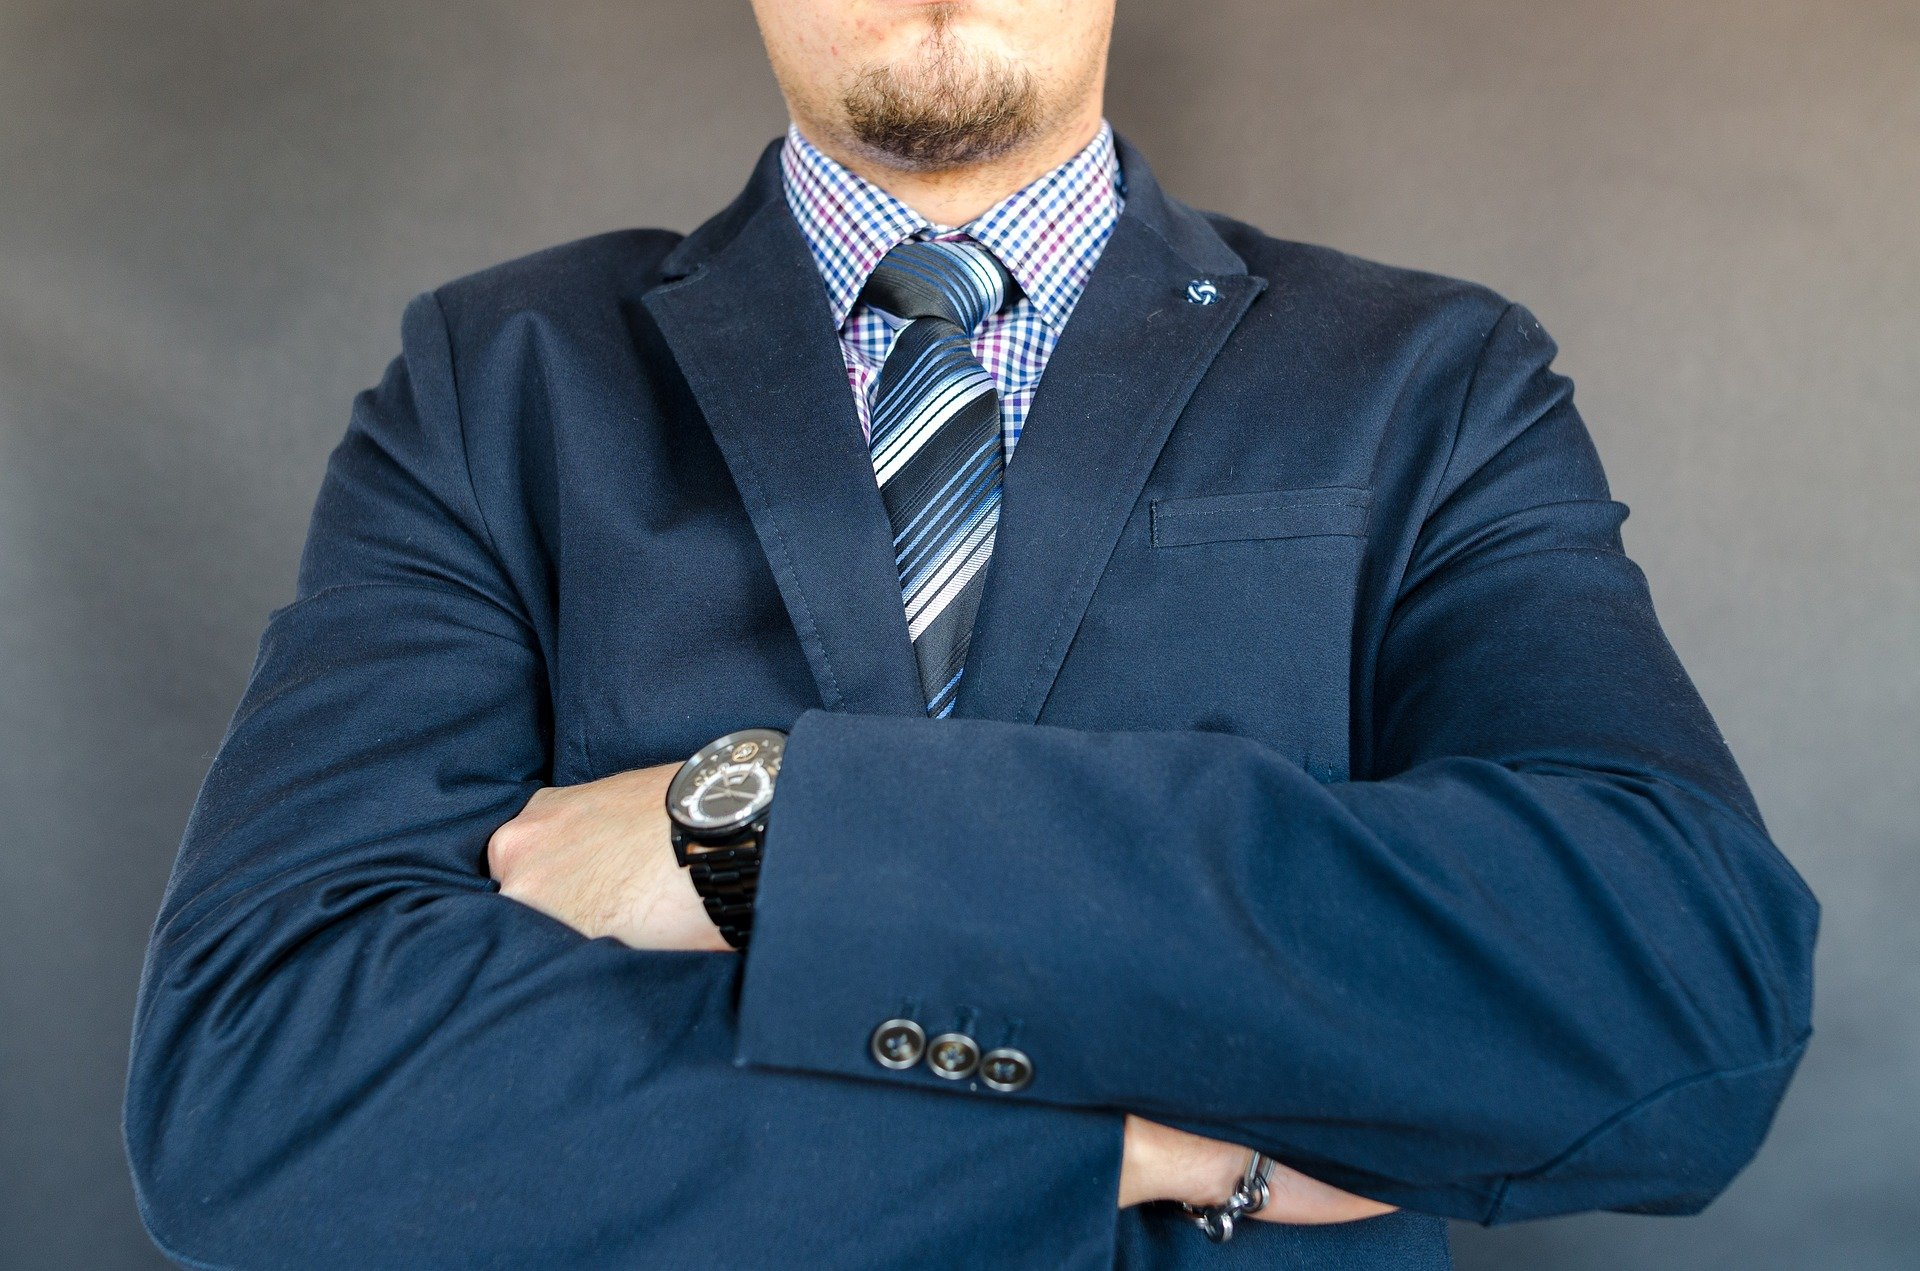 A close-up of a man in a suit with his hands folded against his chest   Photo: Pixabay/Goumbik